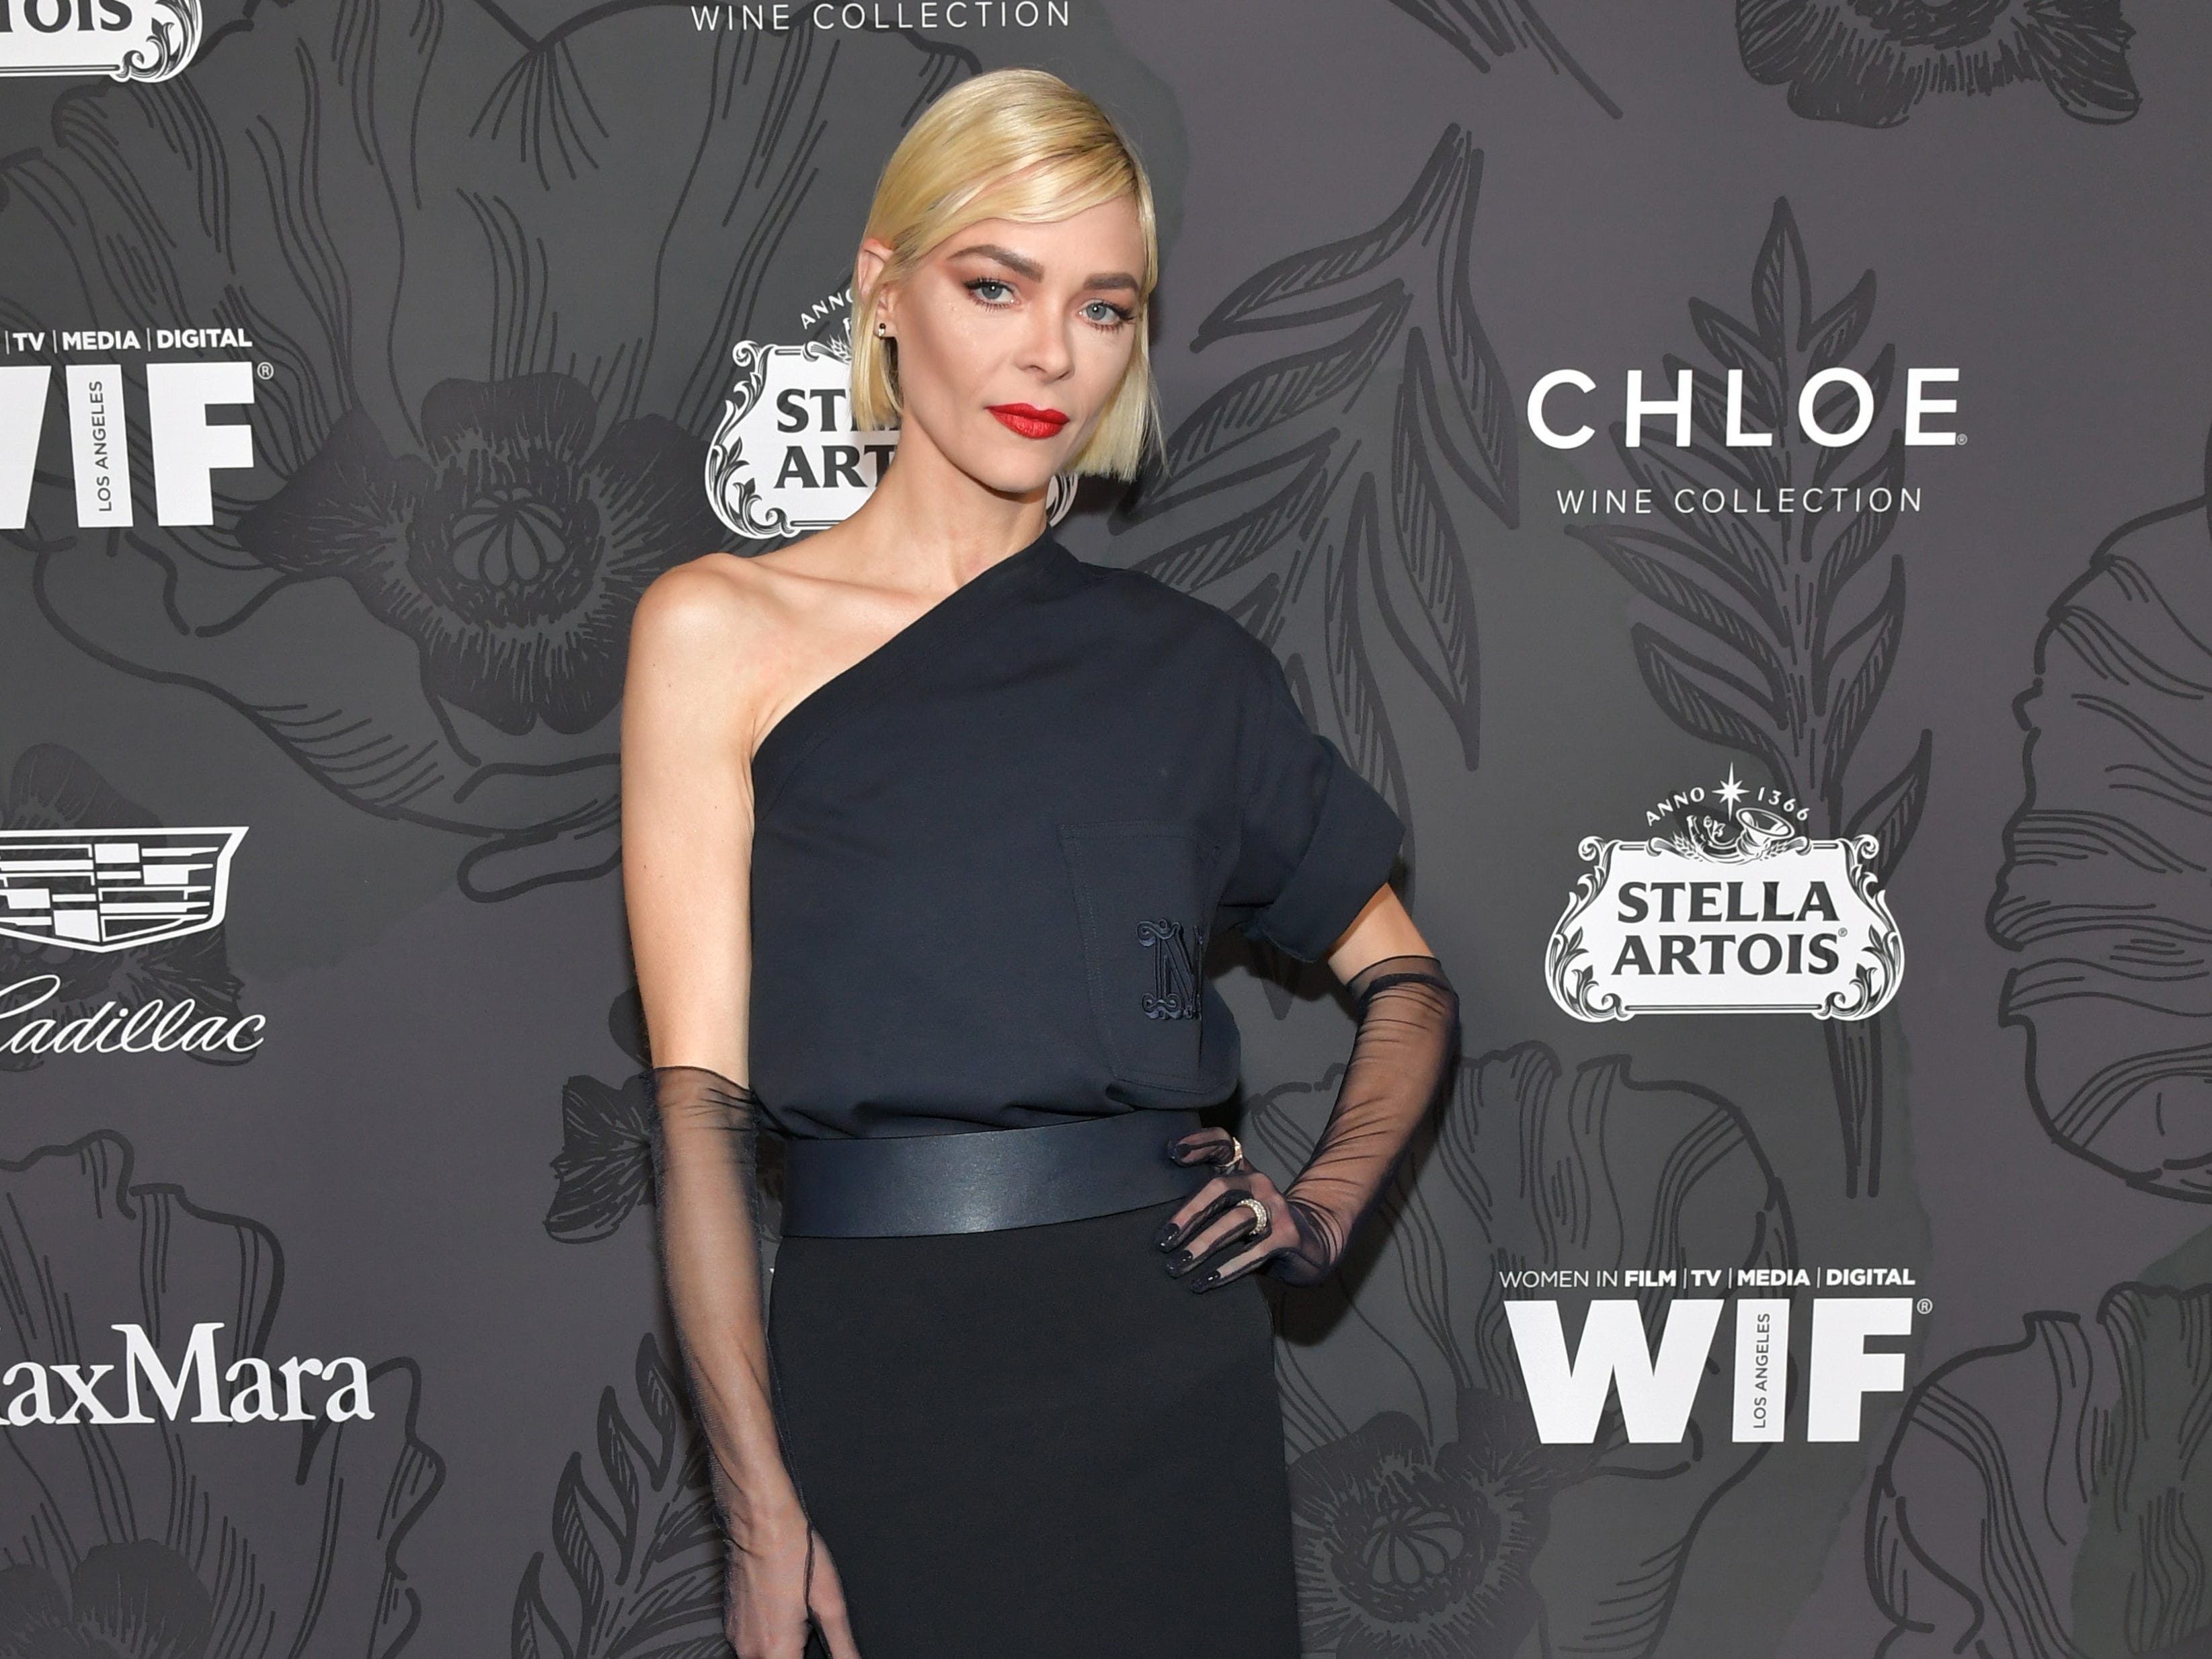 BEVERLY HILLS, CALIFORNIA - FEBRUARY 22: Jaime King attends the 12th Annual Women In Film Oscar Party at Spring Place on February 22, 2019 in Beverly Hills, California. (Photo by Amy Sussman/Getty Images) ORG XMIT: 775298179 ORIG FILE ID: 1131511028